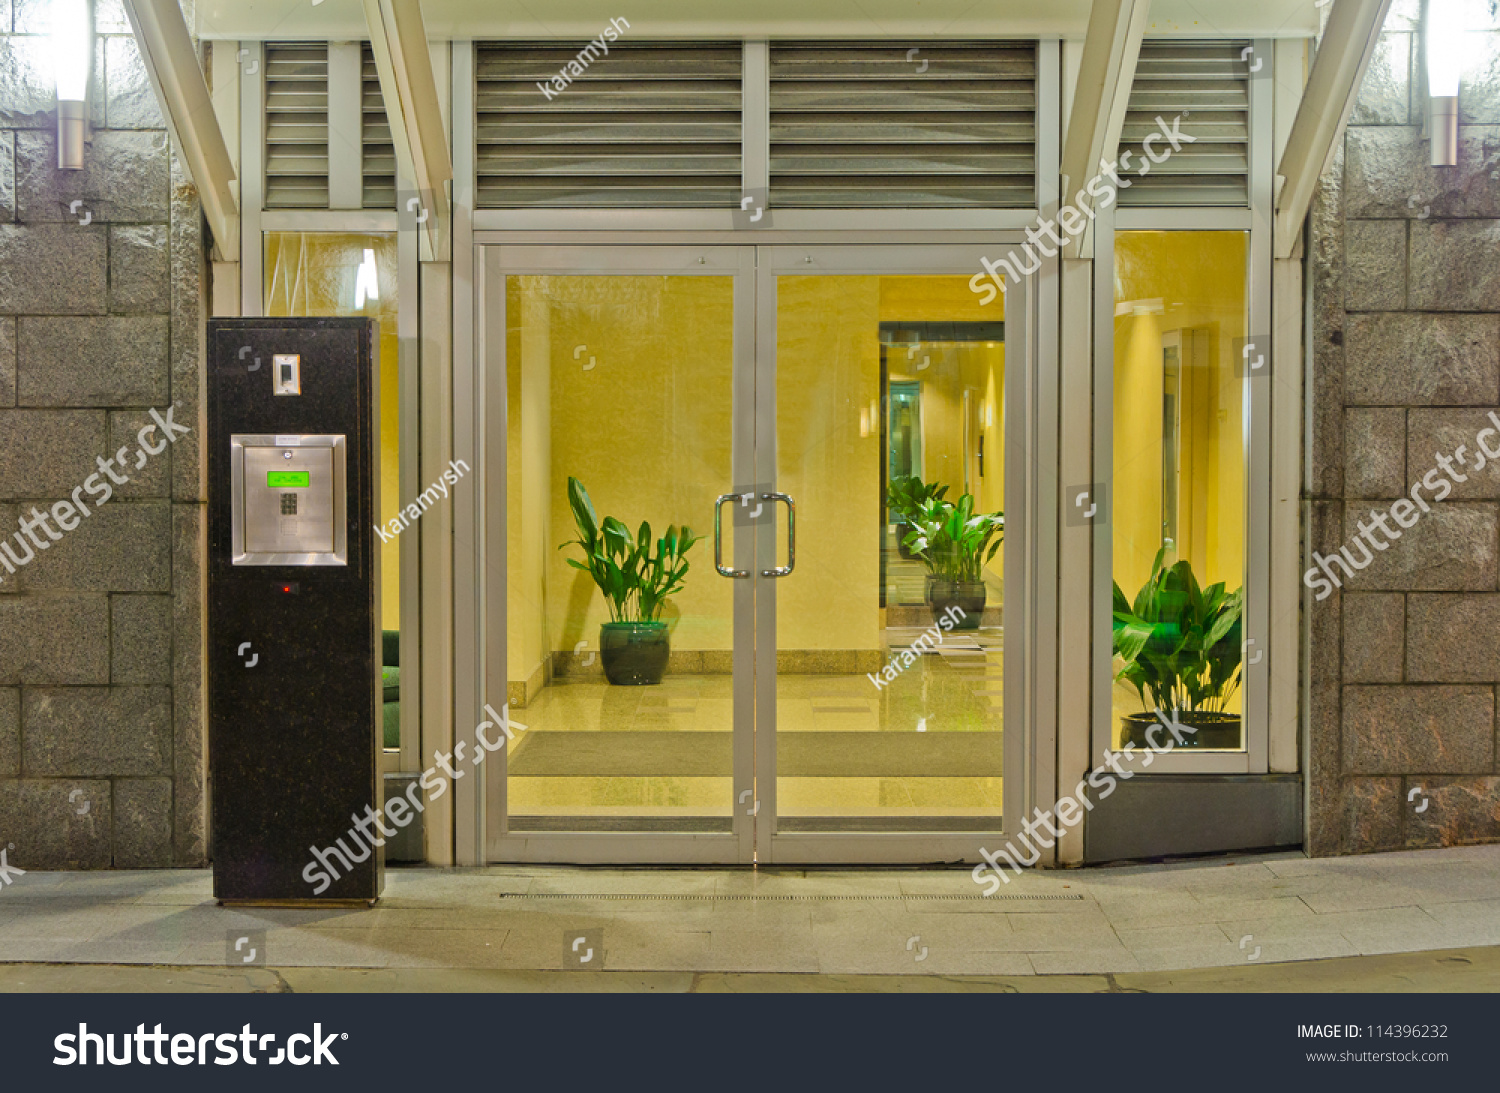 Entrance back door of a building at night stock photo for Back door entrance